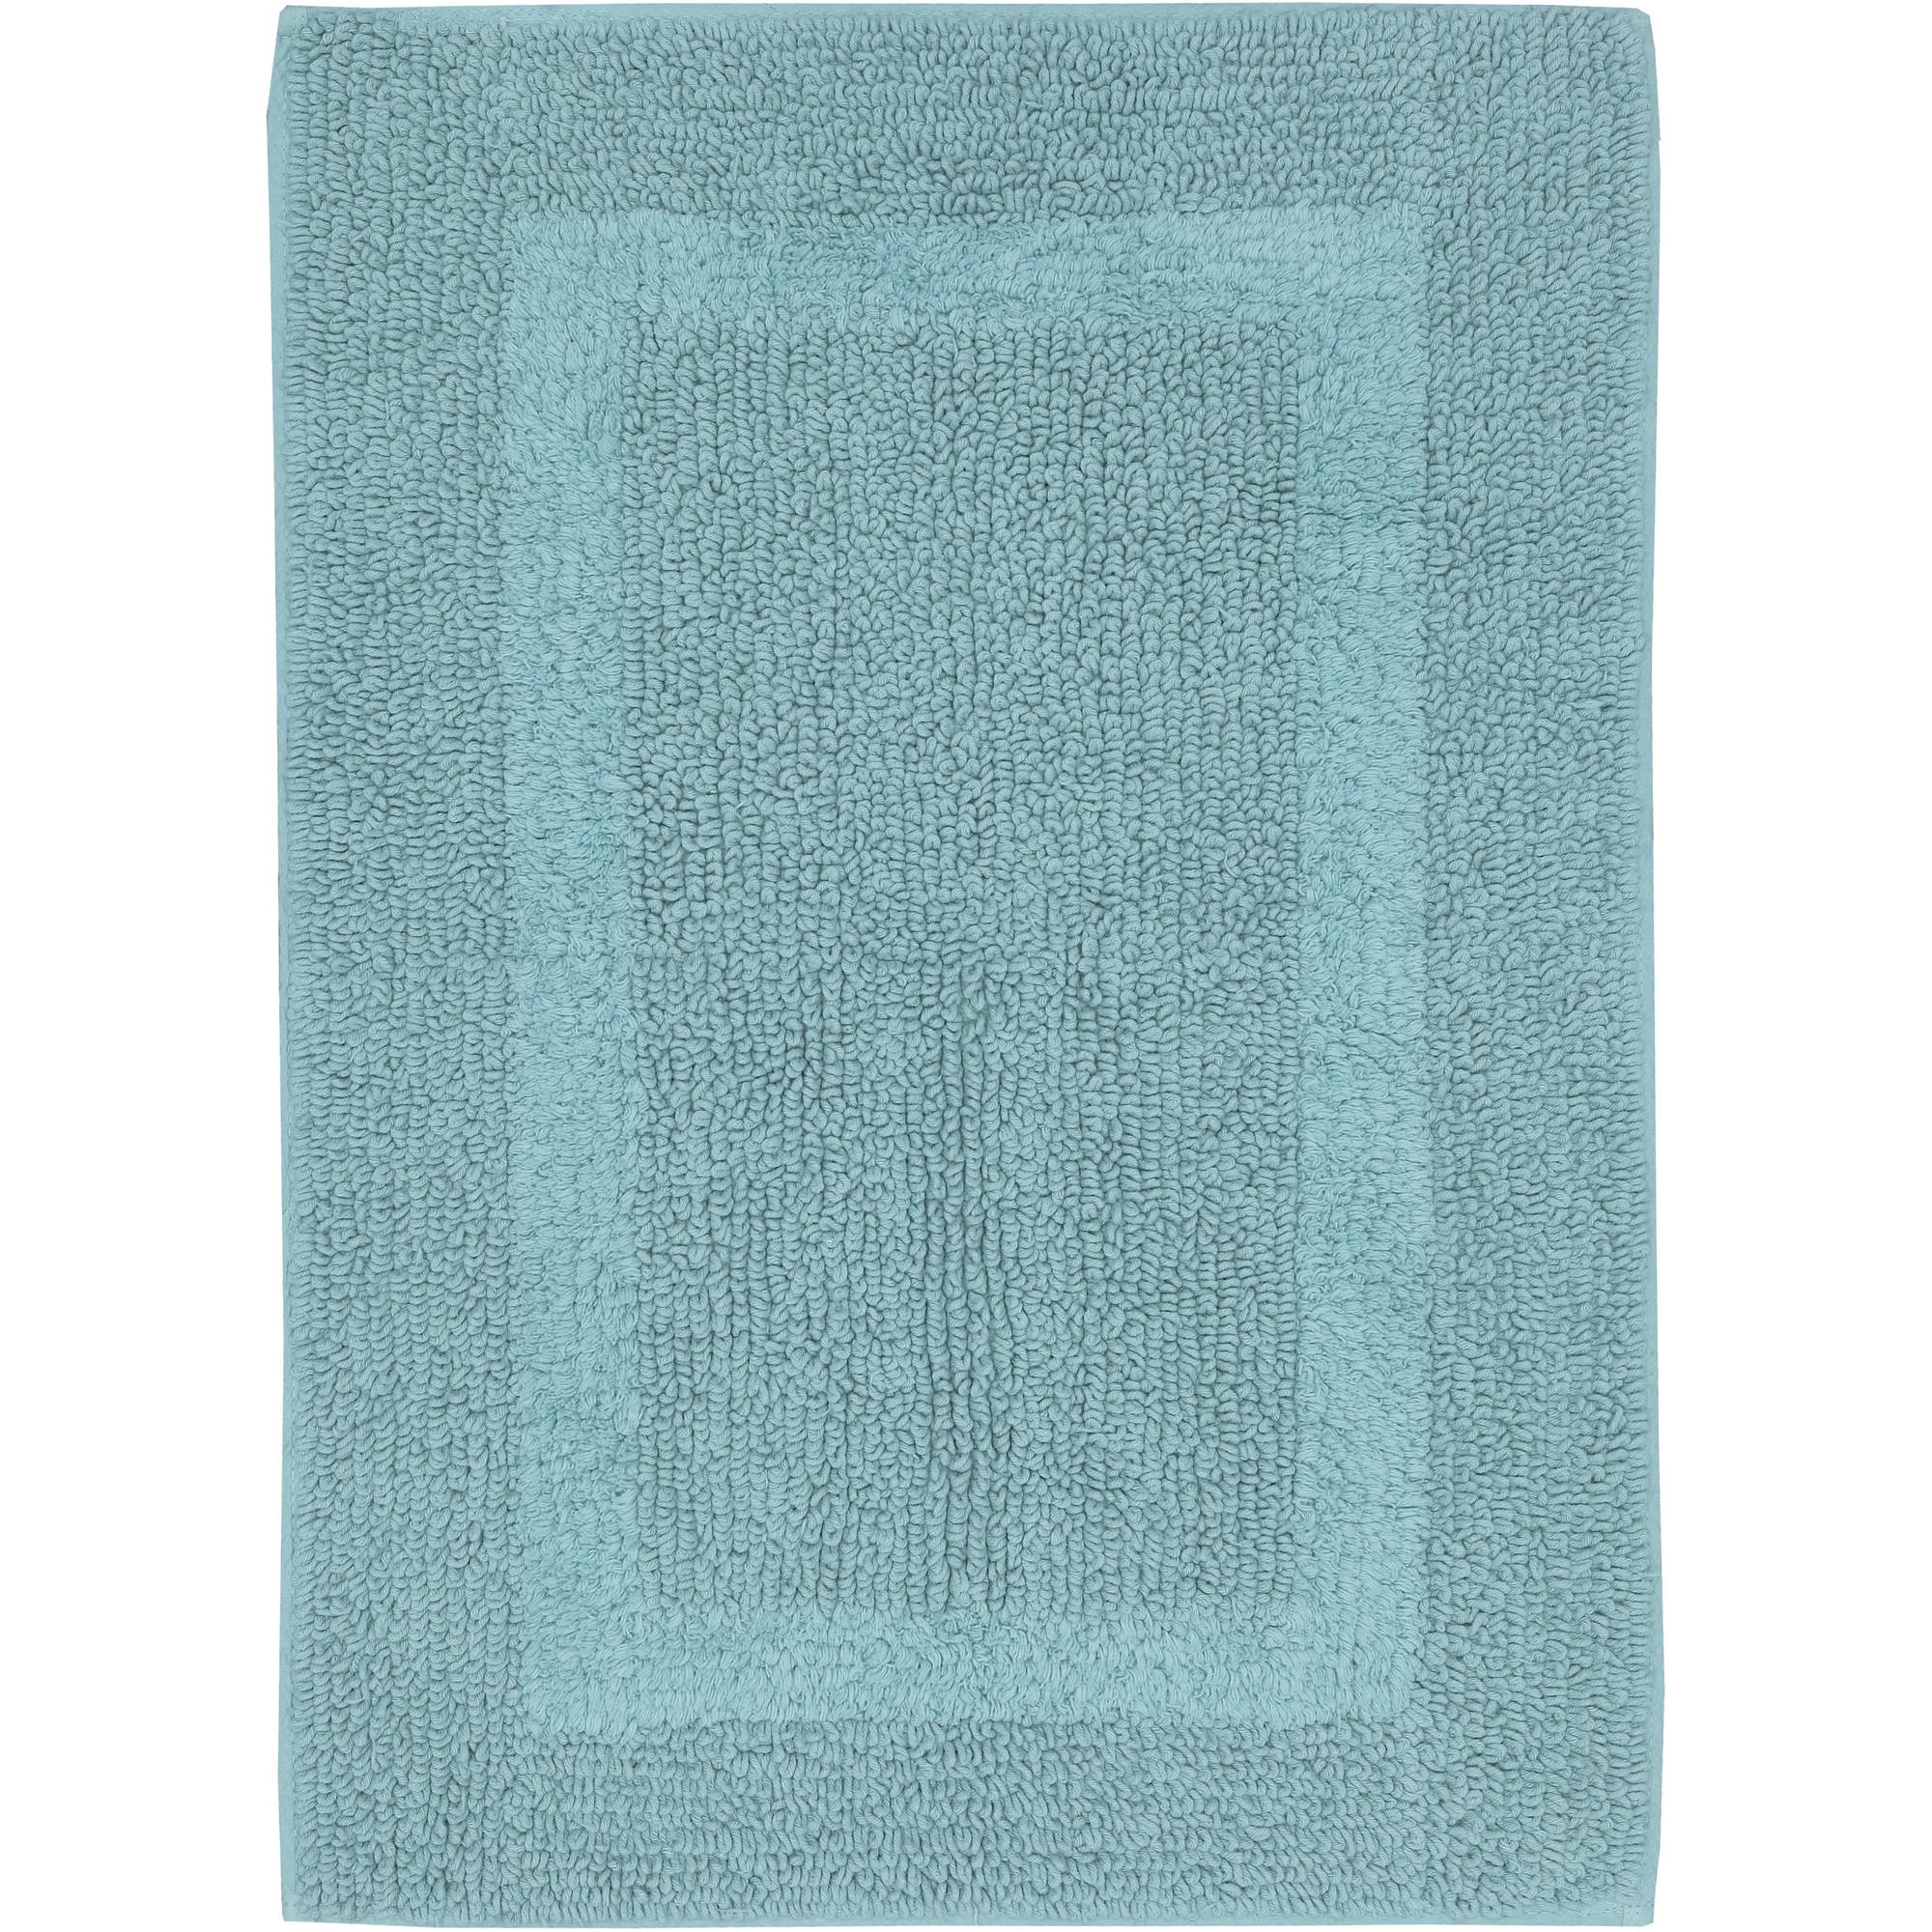 Bright Turquoise Bath Rugs